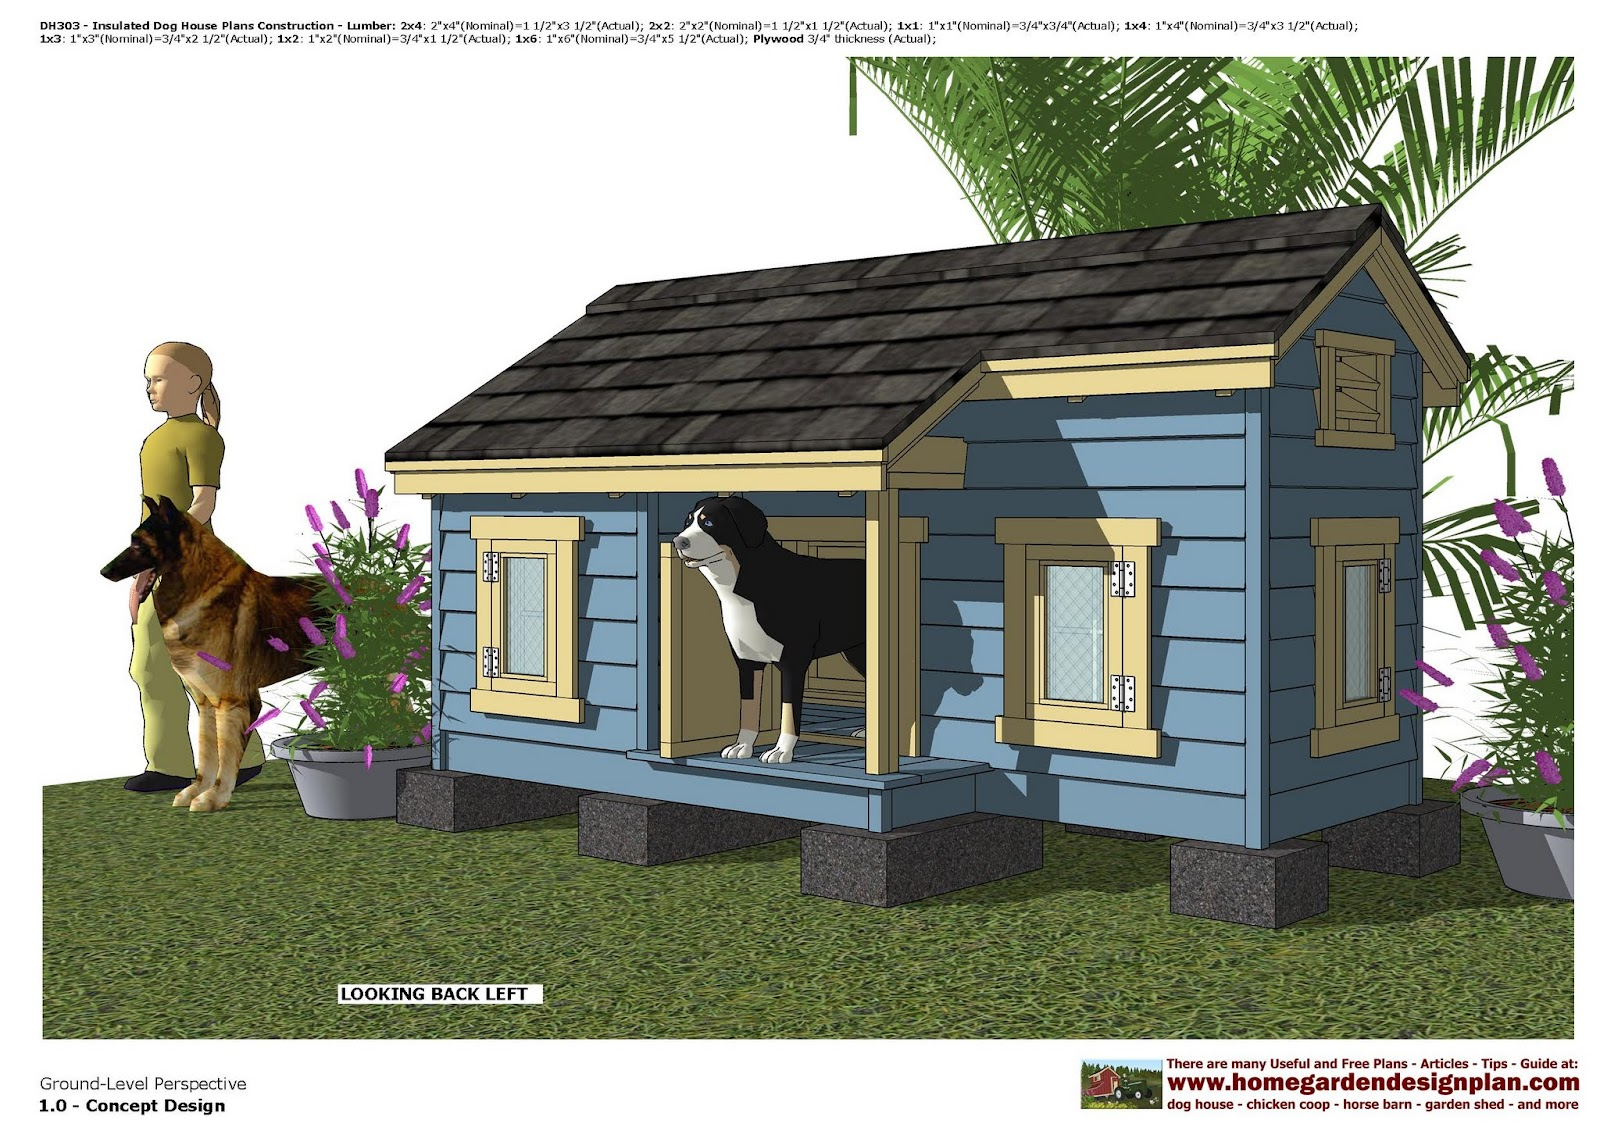 Home garden plans dh303 insulated dog house plans dog for Large insulated dog house